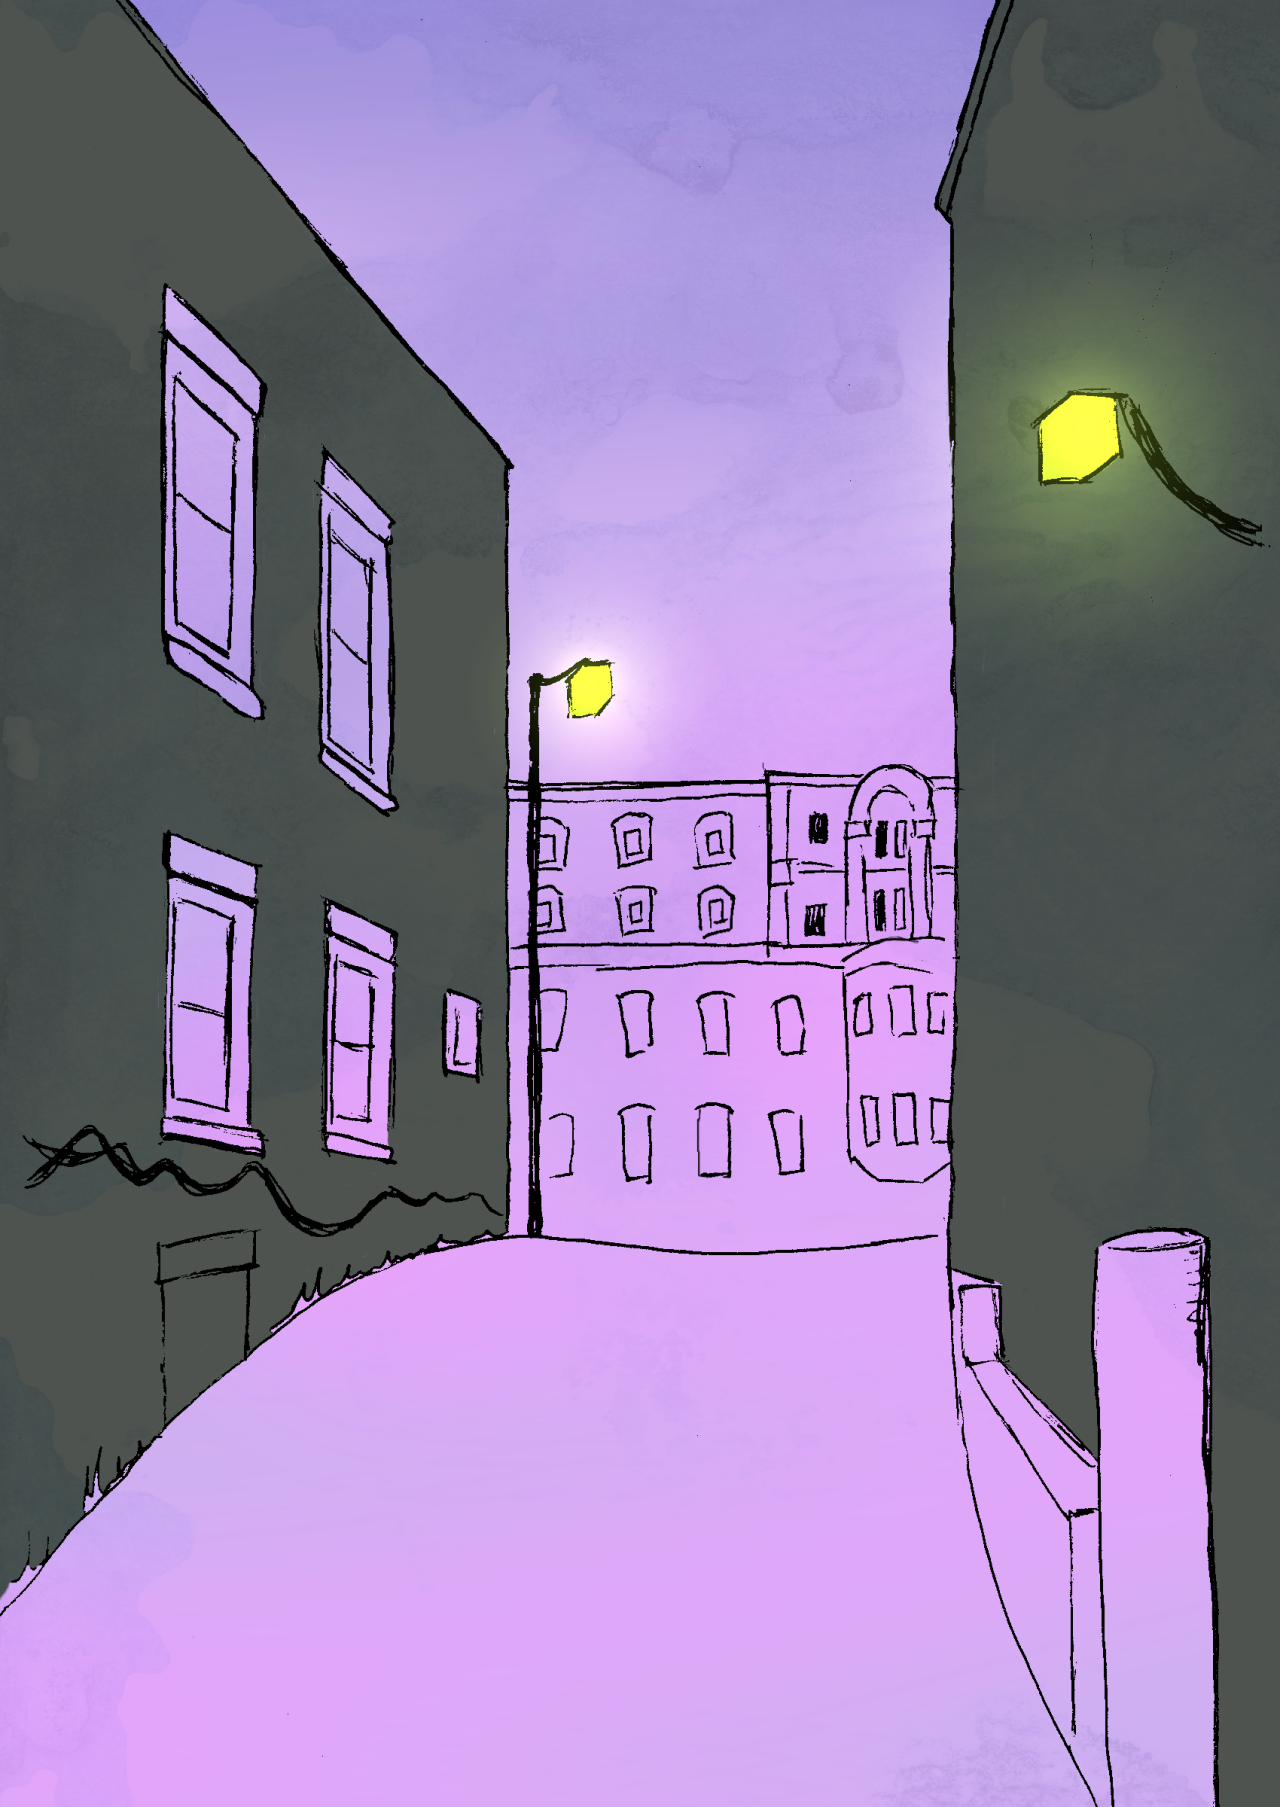 Perspective practice. #my art#art#drawing#background#perspective